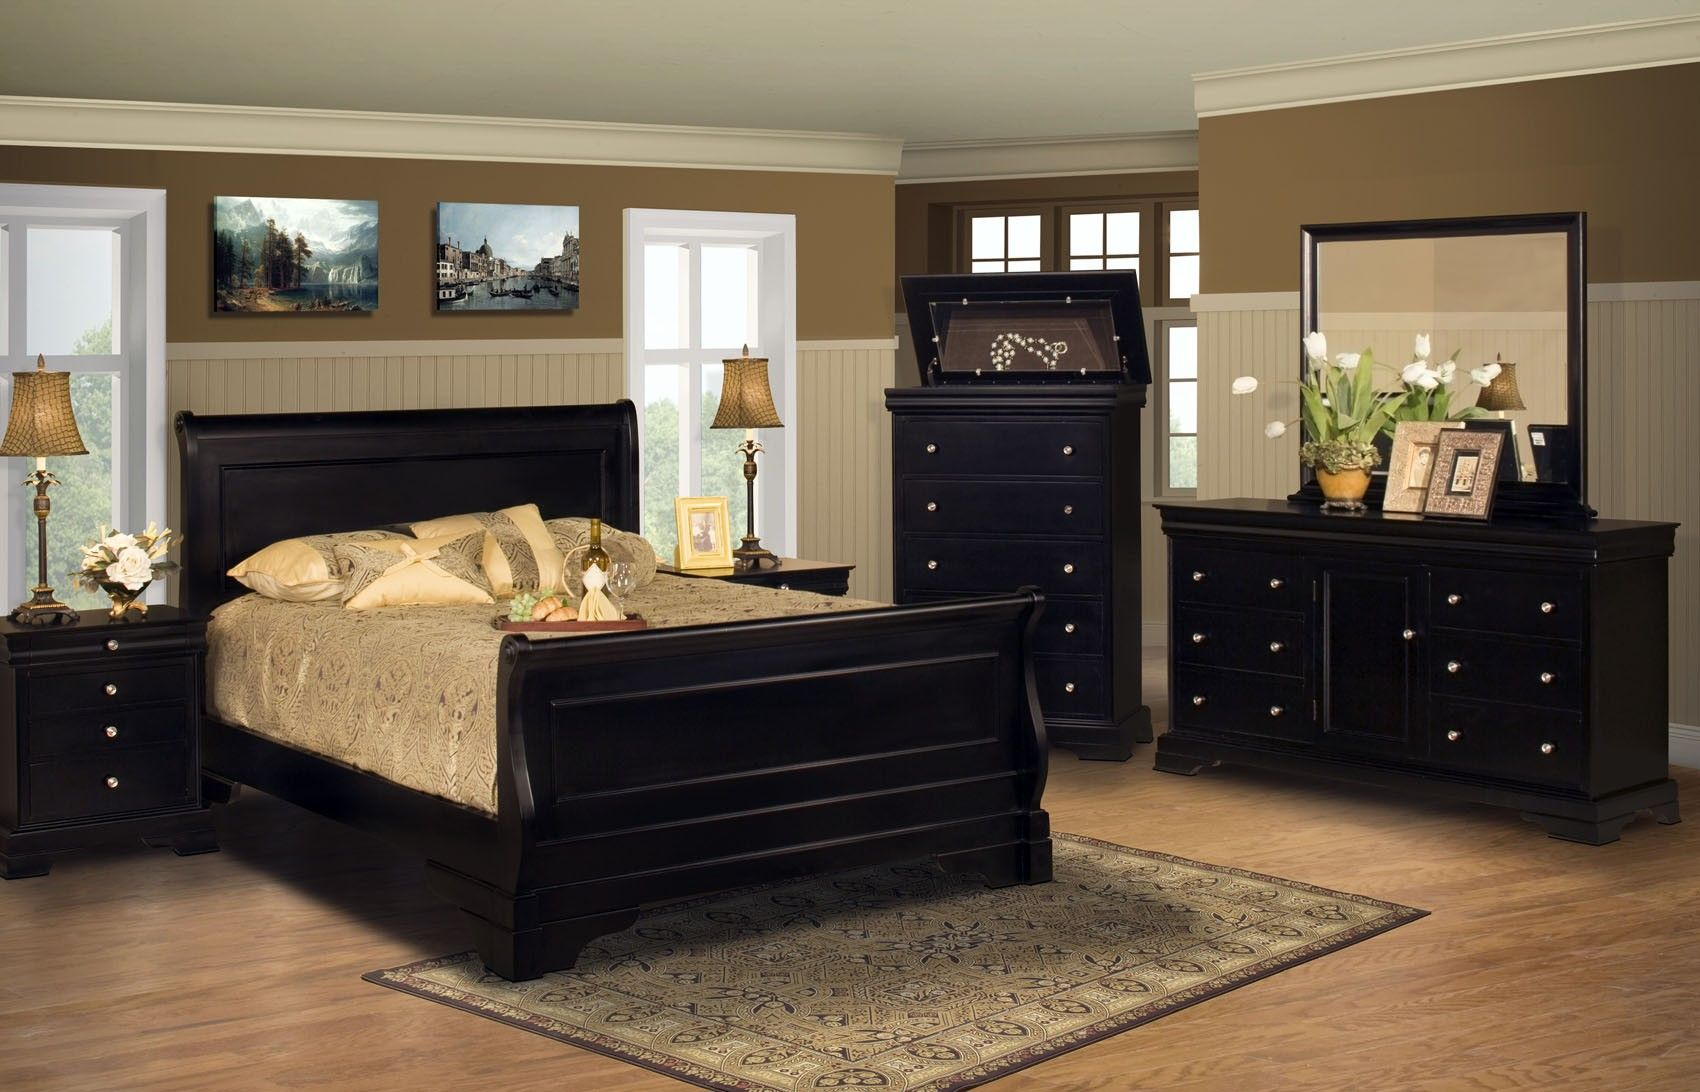 Queen Bedroom Sets For Sale Excellent Www Badcock Com Set Cheap Wood | Home  Design | Pinterest | Queen Bedroom Sets, Queen Bedroom And Bed Sets